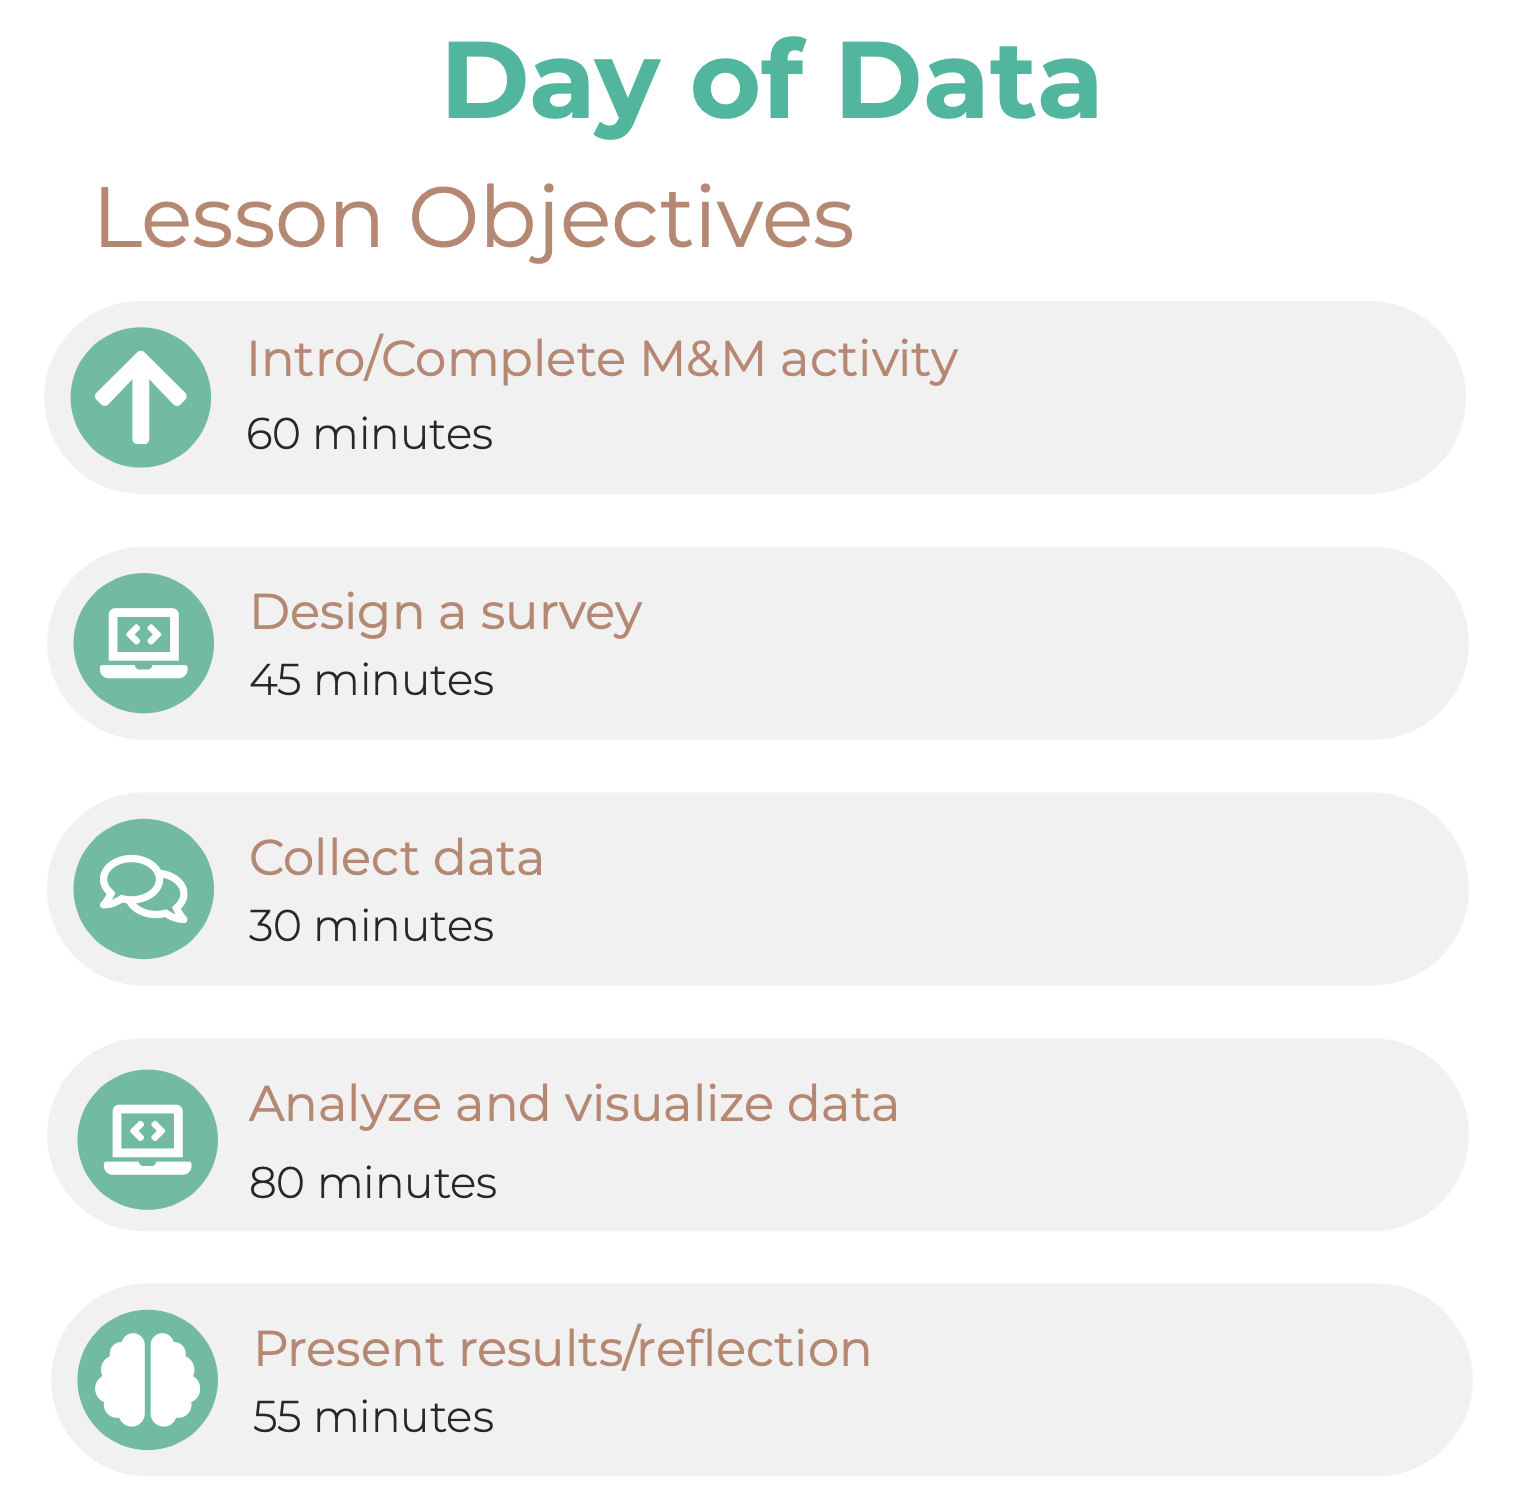 Day of Data